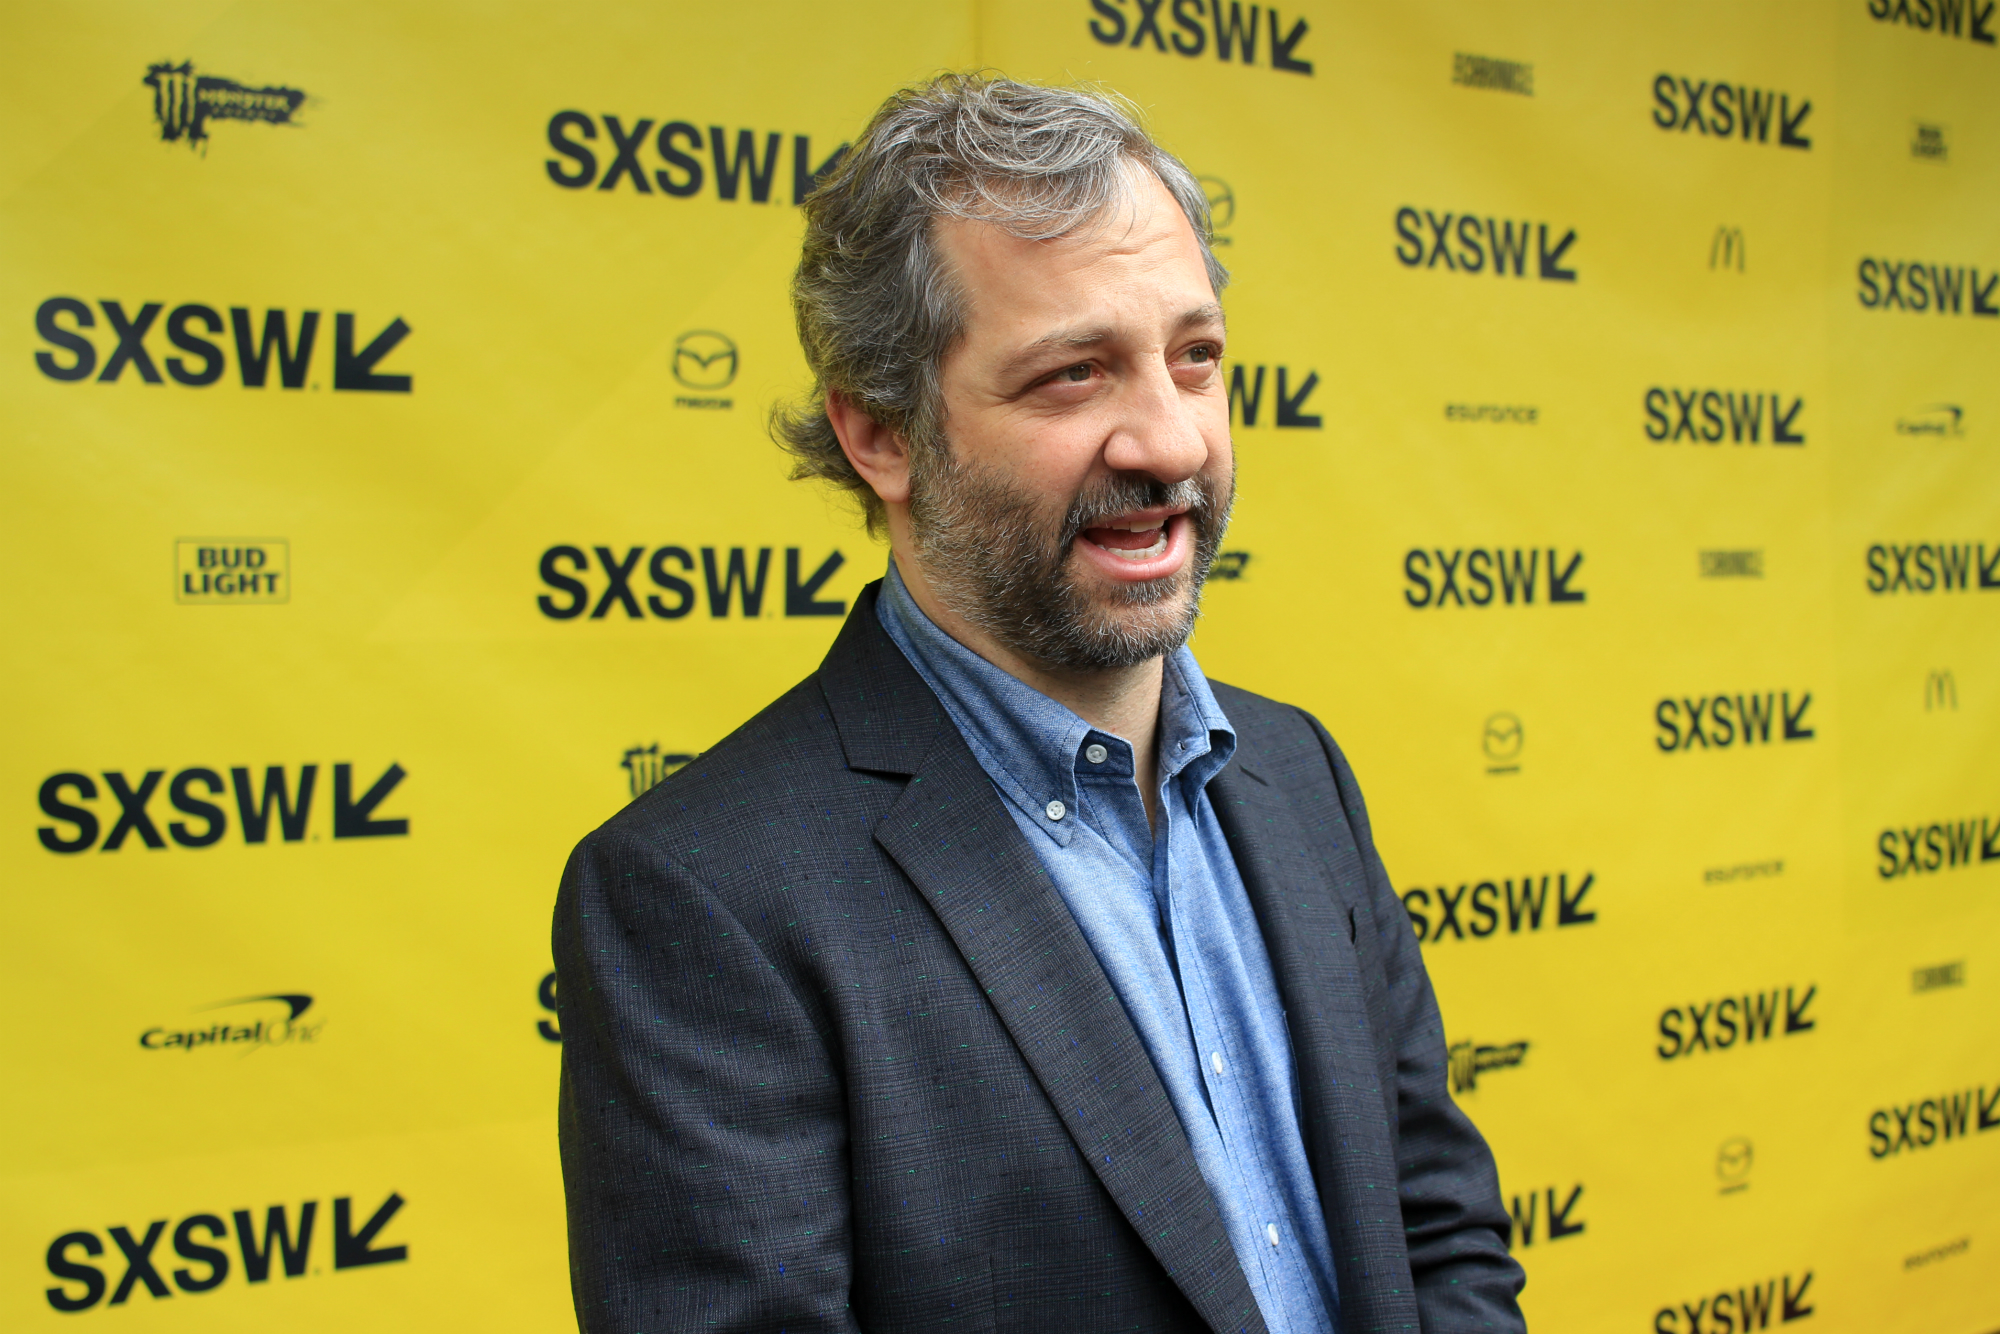 kaplan cos sxsw 3 16 big sick 15 The King of Staten Island Turns Pete Davidson into a Judd Apatow Archetype: Review